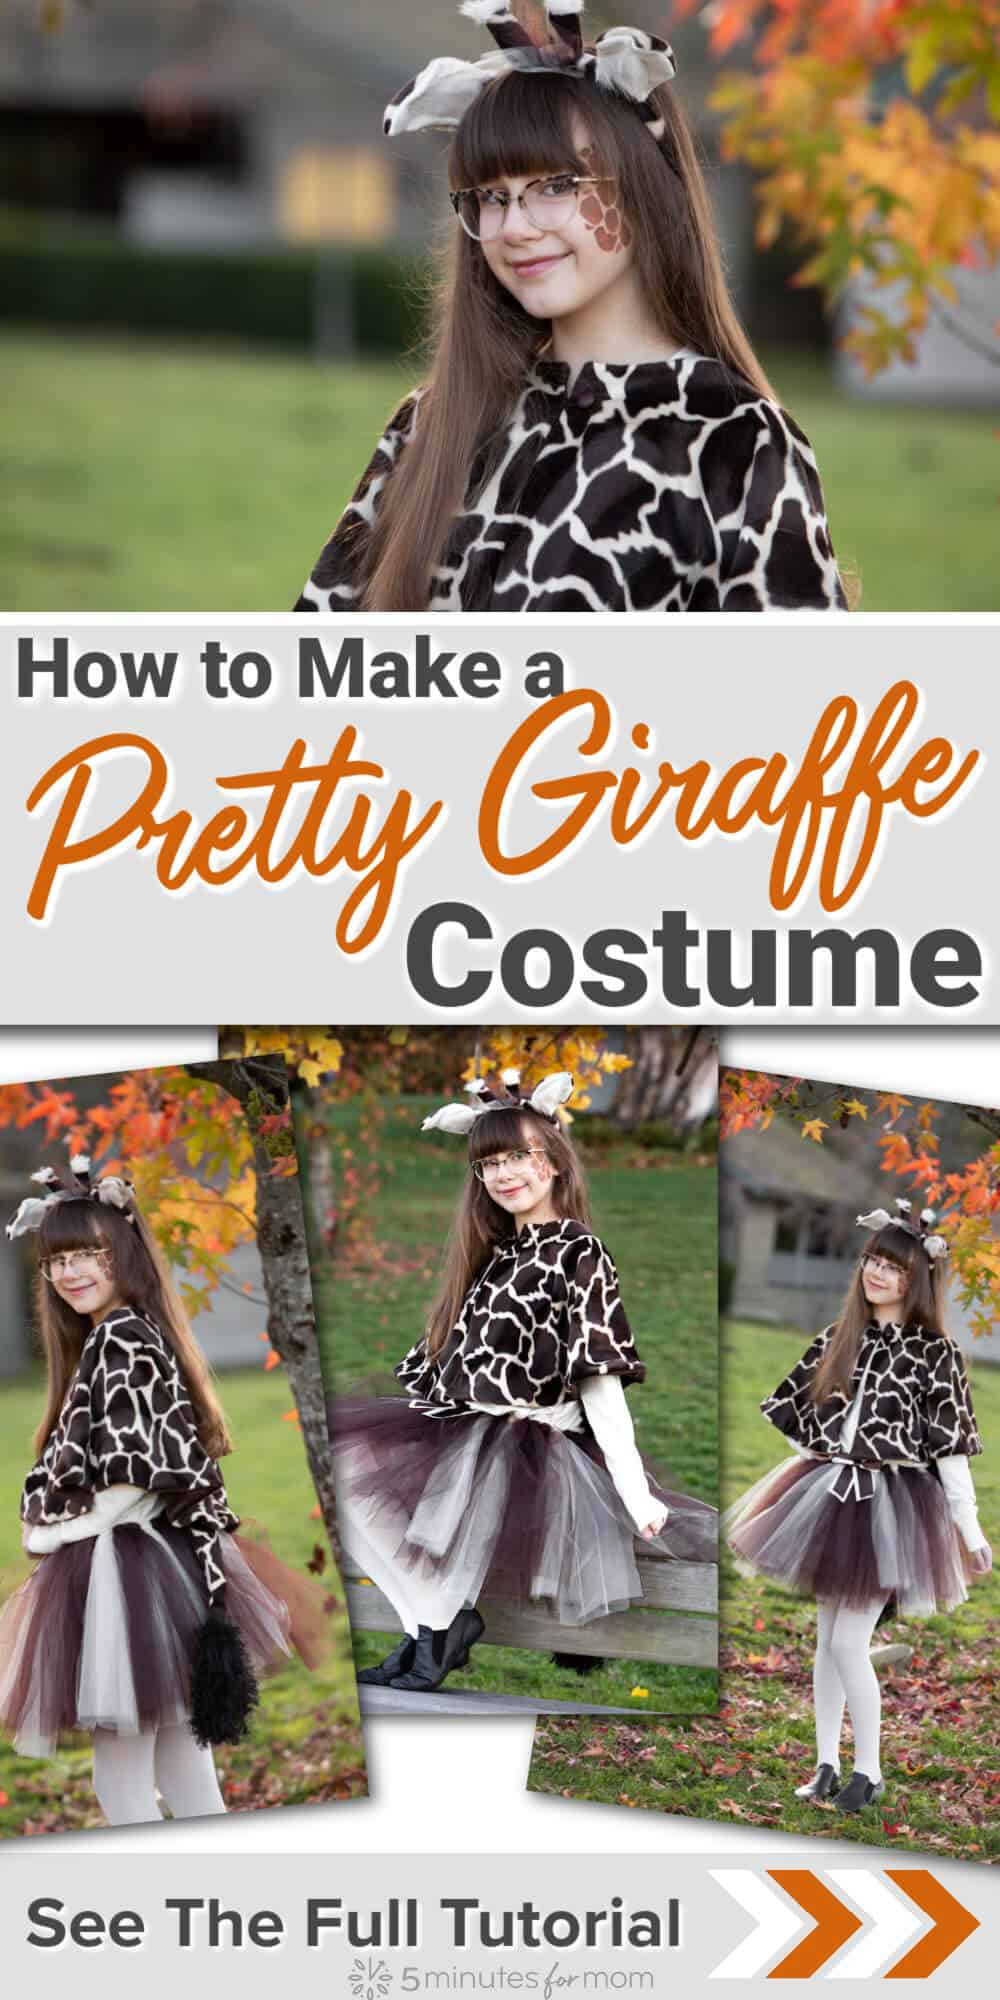 """Girl dressed in a handmade giraffe costume. Text on image says """"How to Make a Pretty Giraffe Costume - See the Full Tutorial"""""""